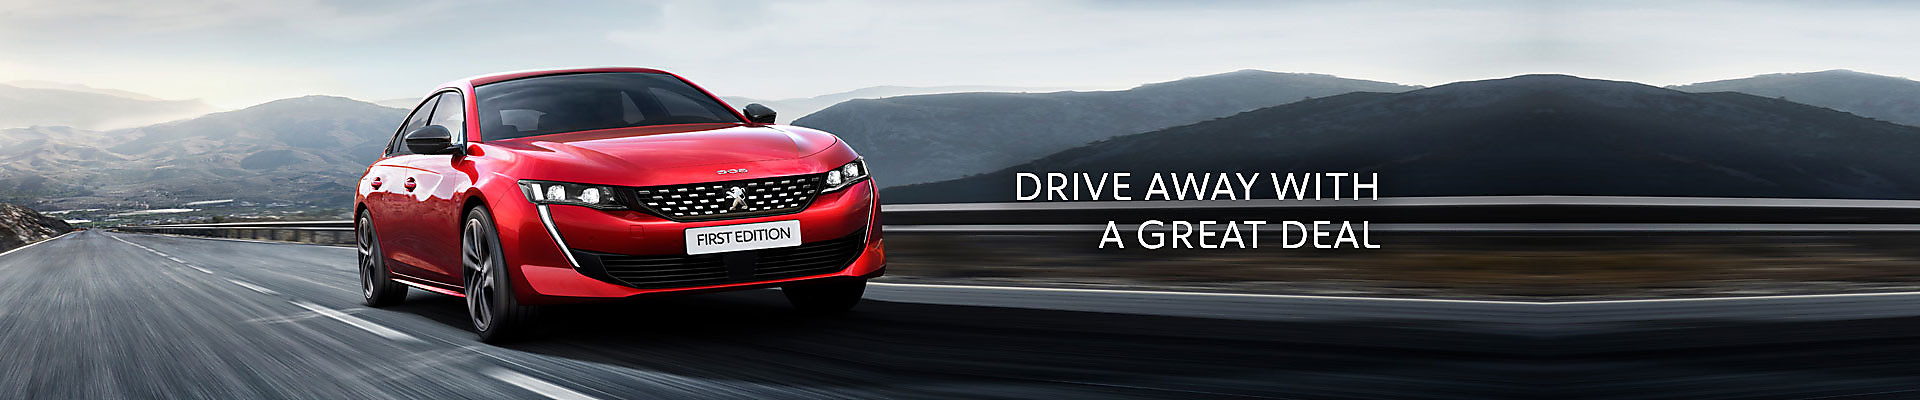 Peugeot All-new 508 First Edition in Ultimate Red